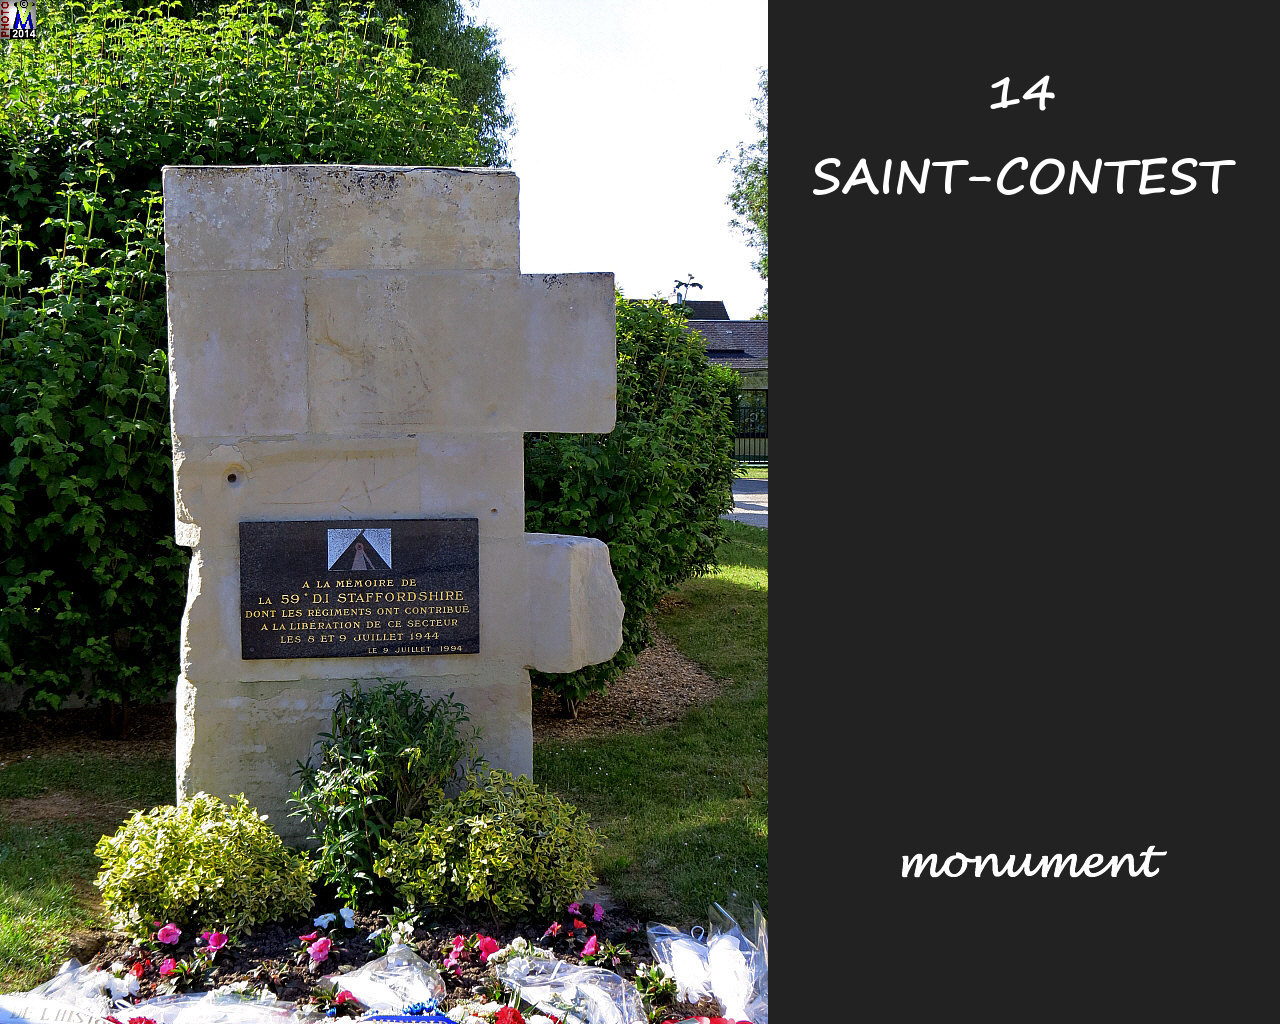 14StCONTEST_monument_100.jpg